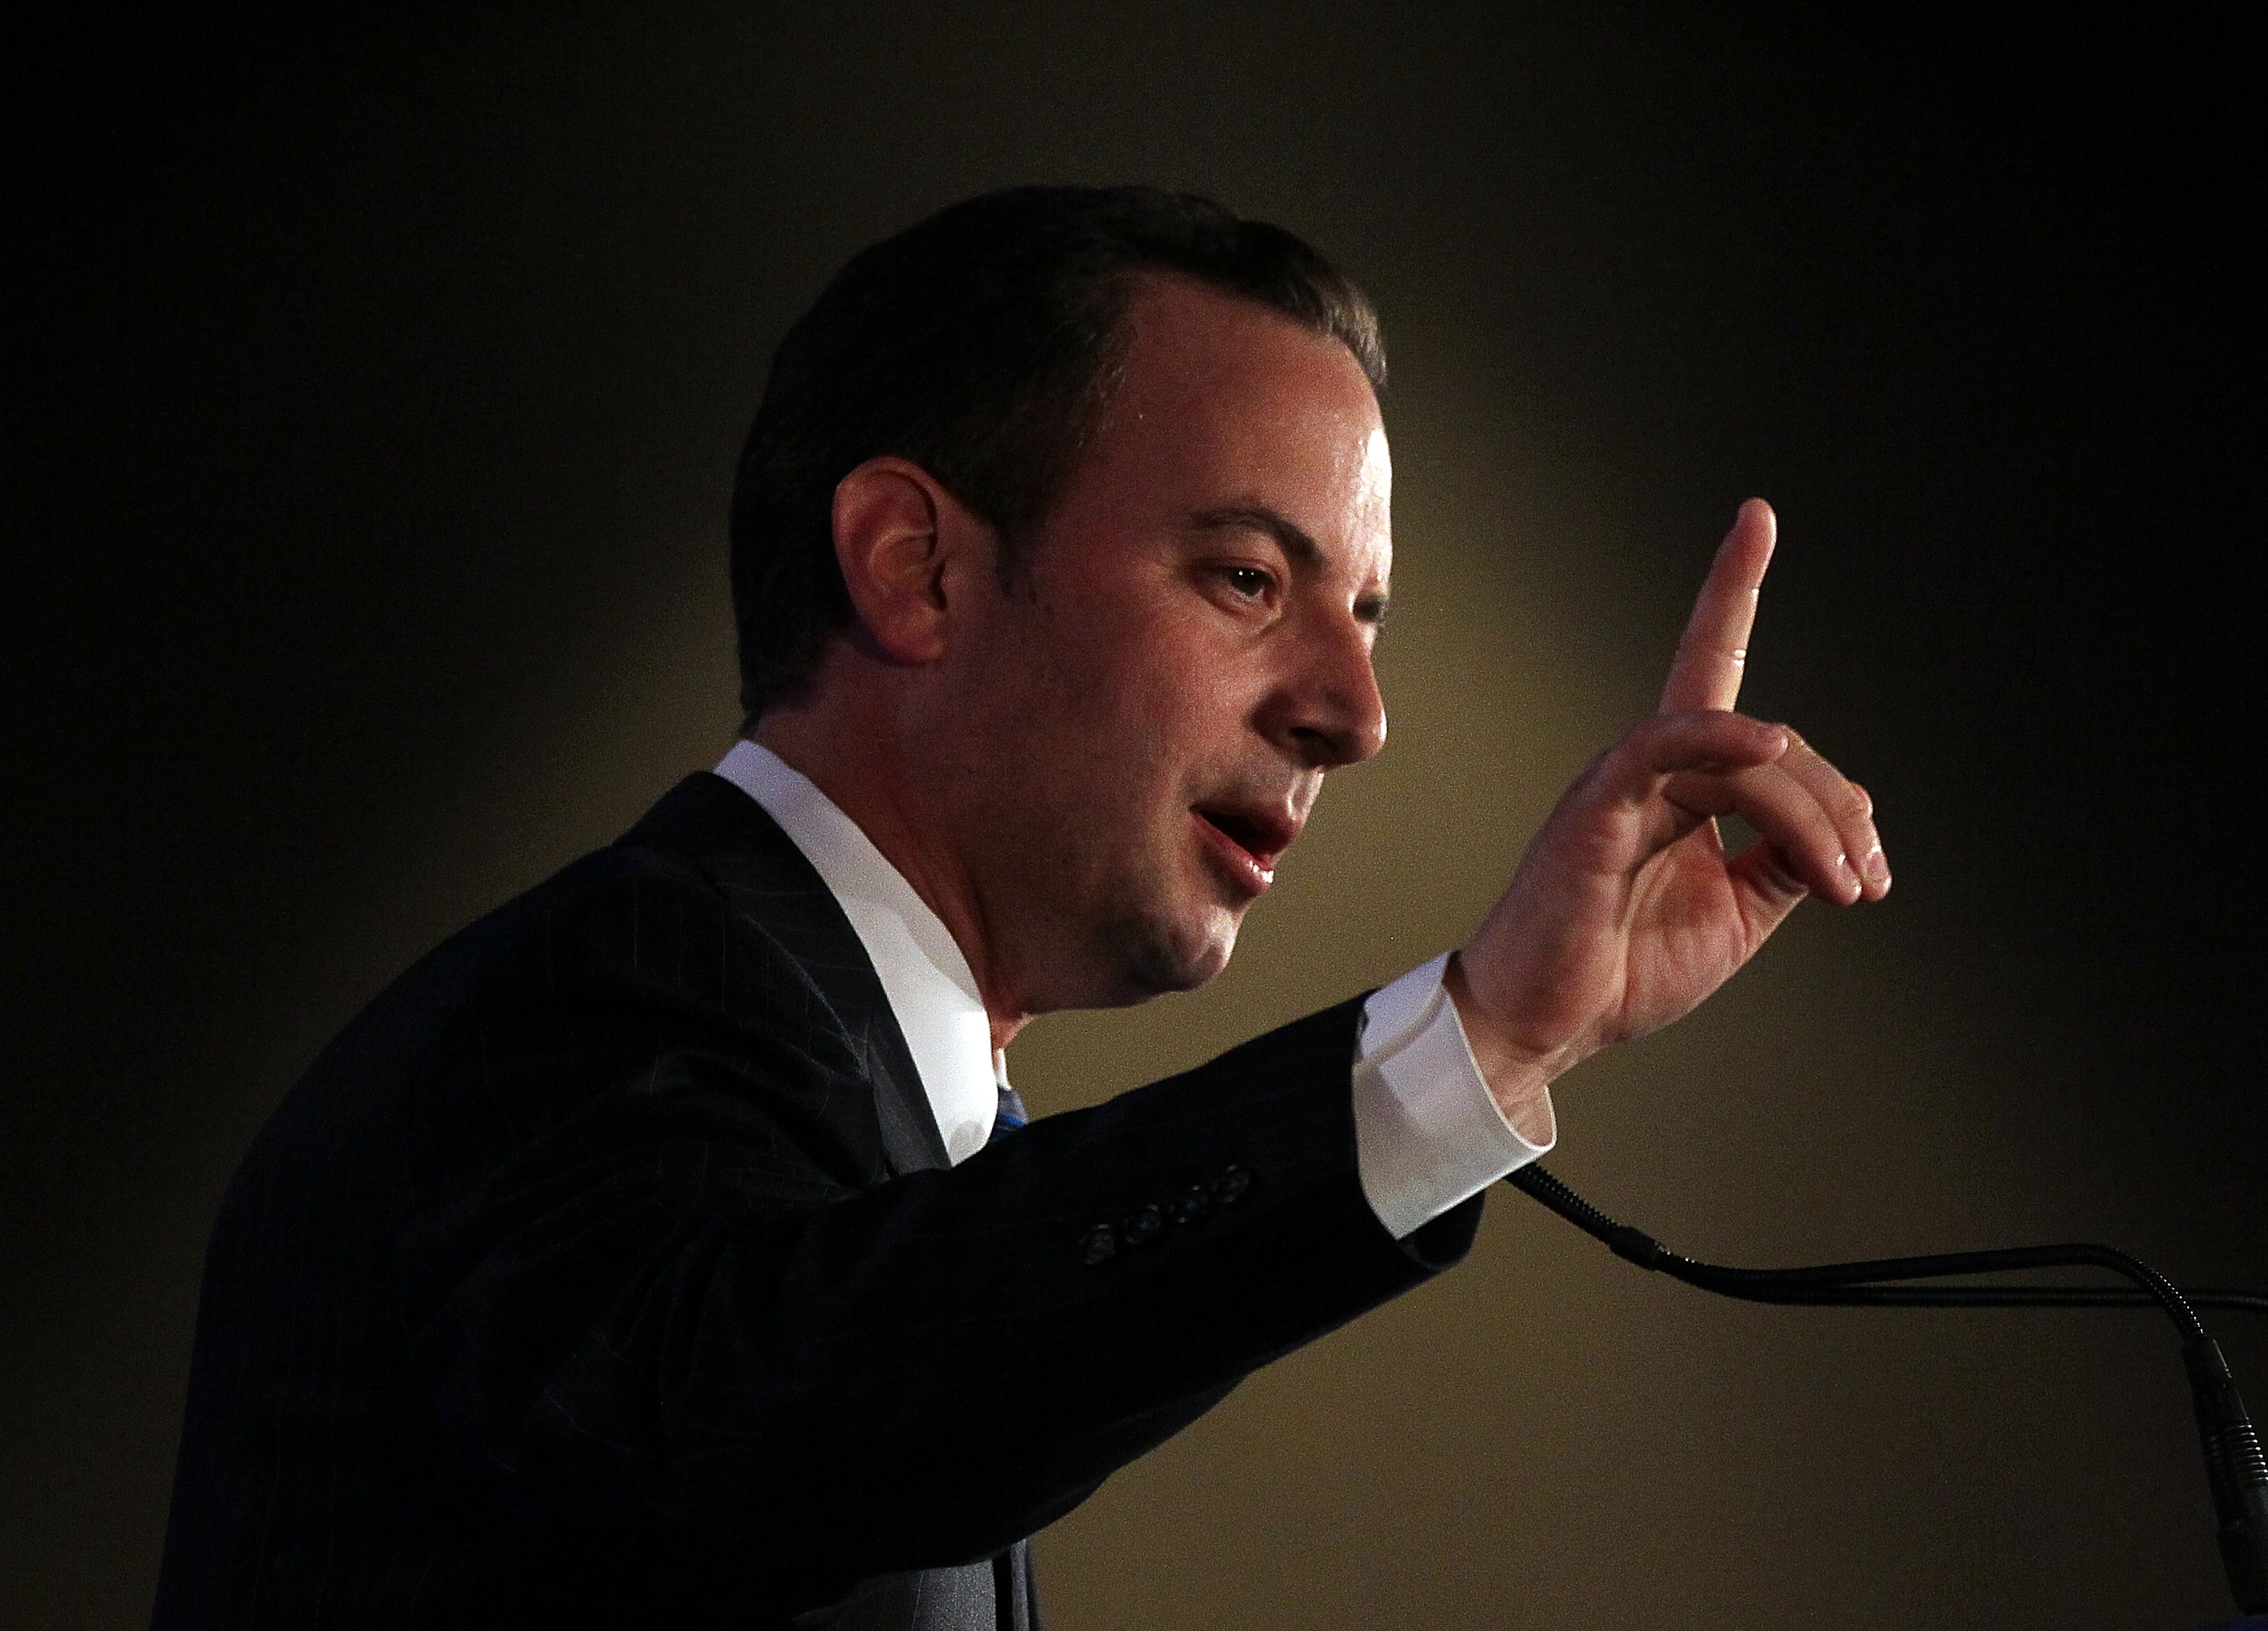 Reince Priebus is the current RNC chairman.